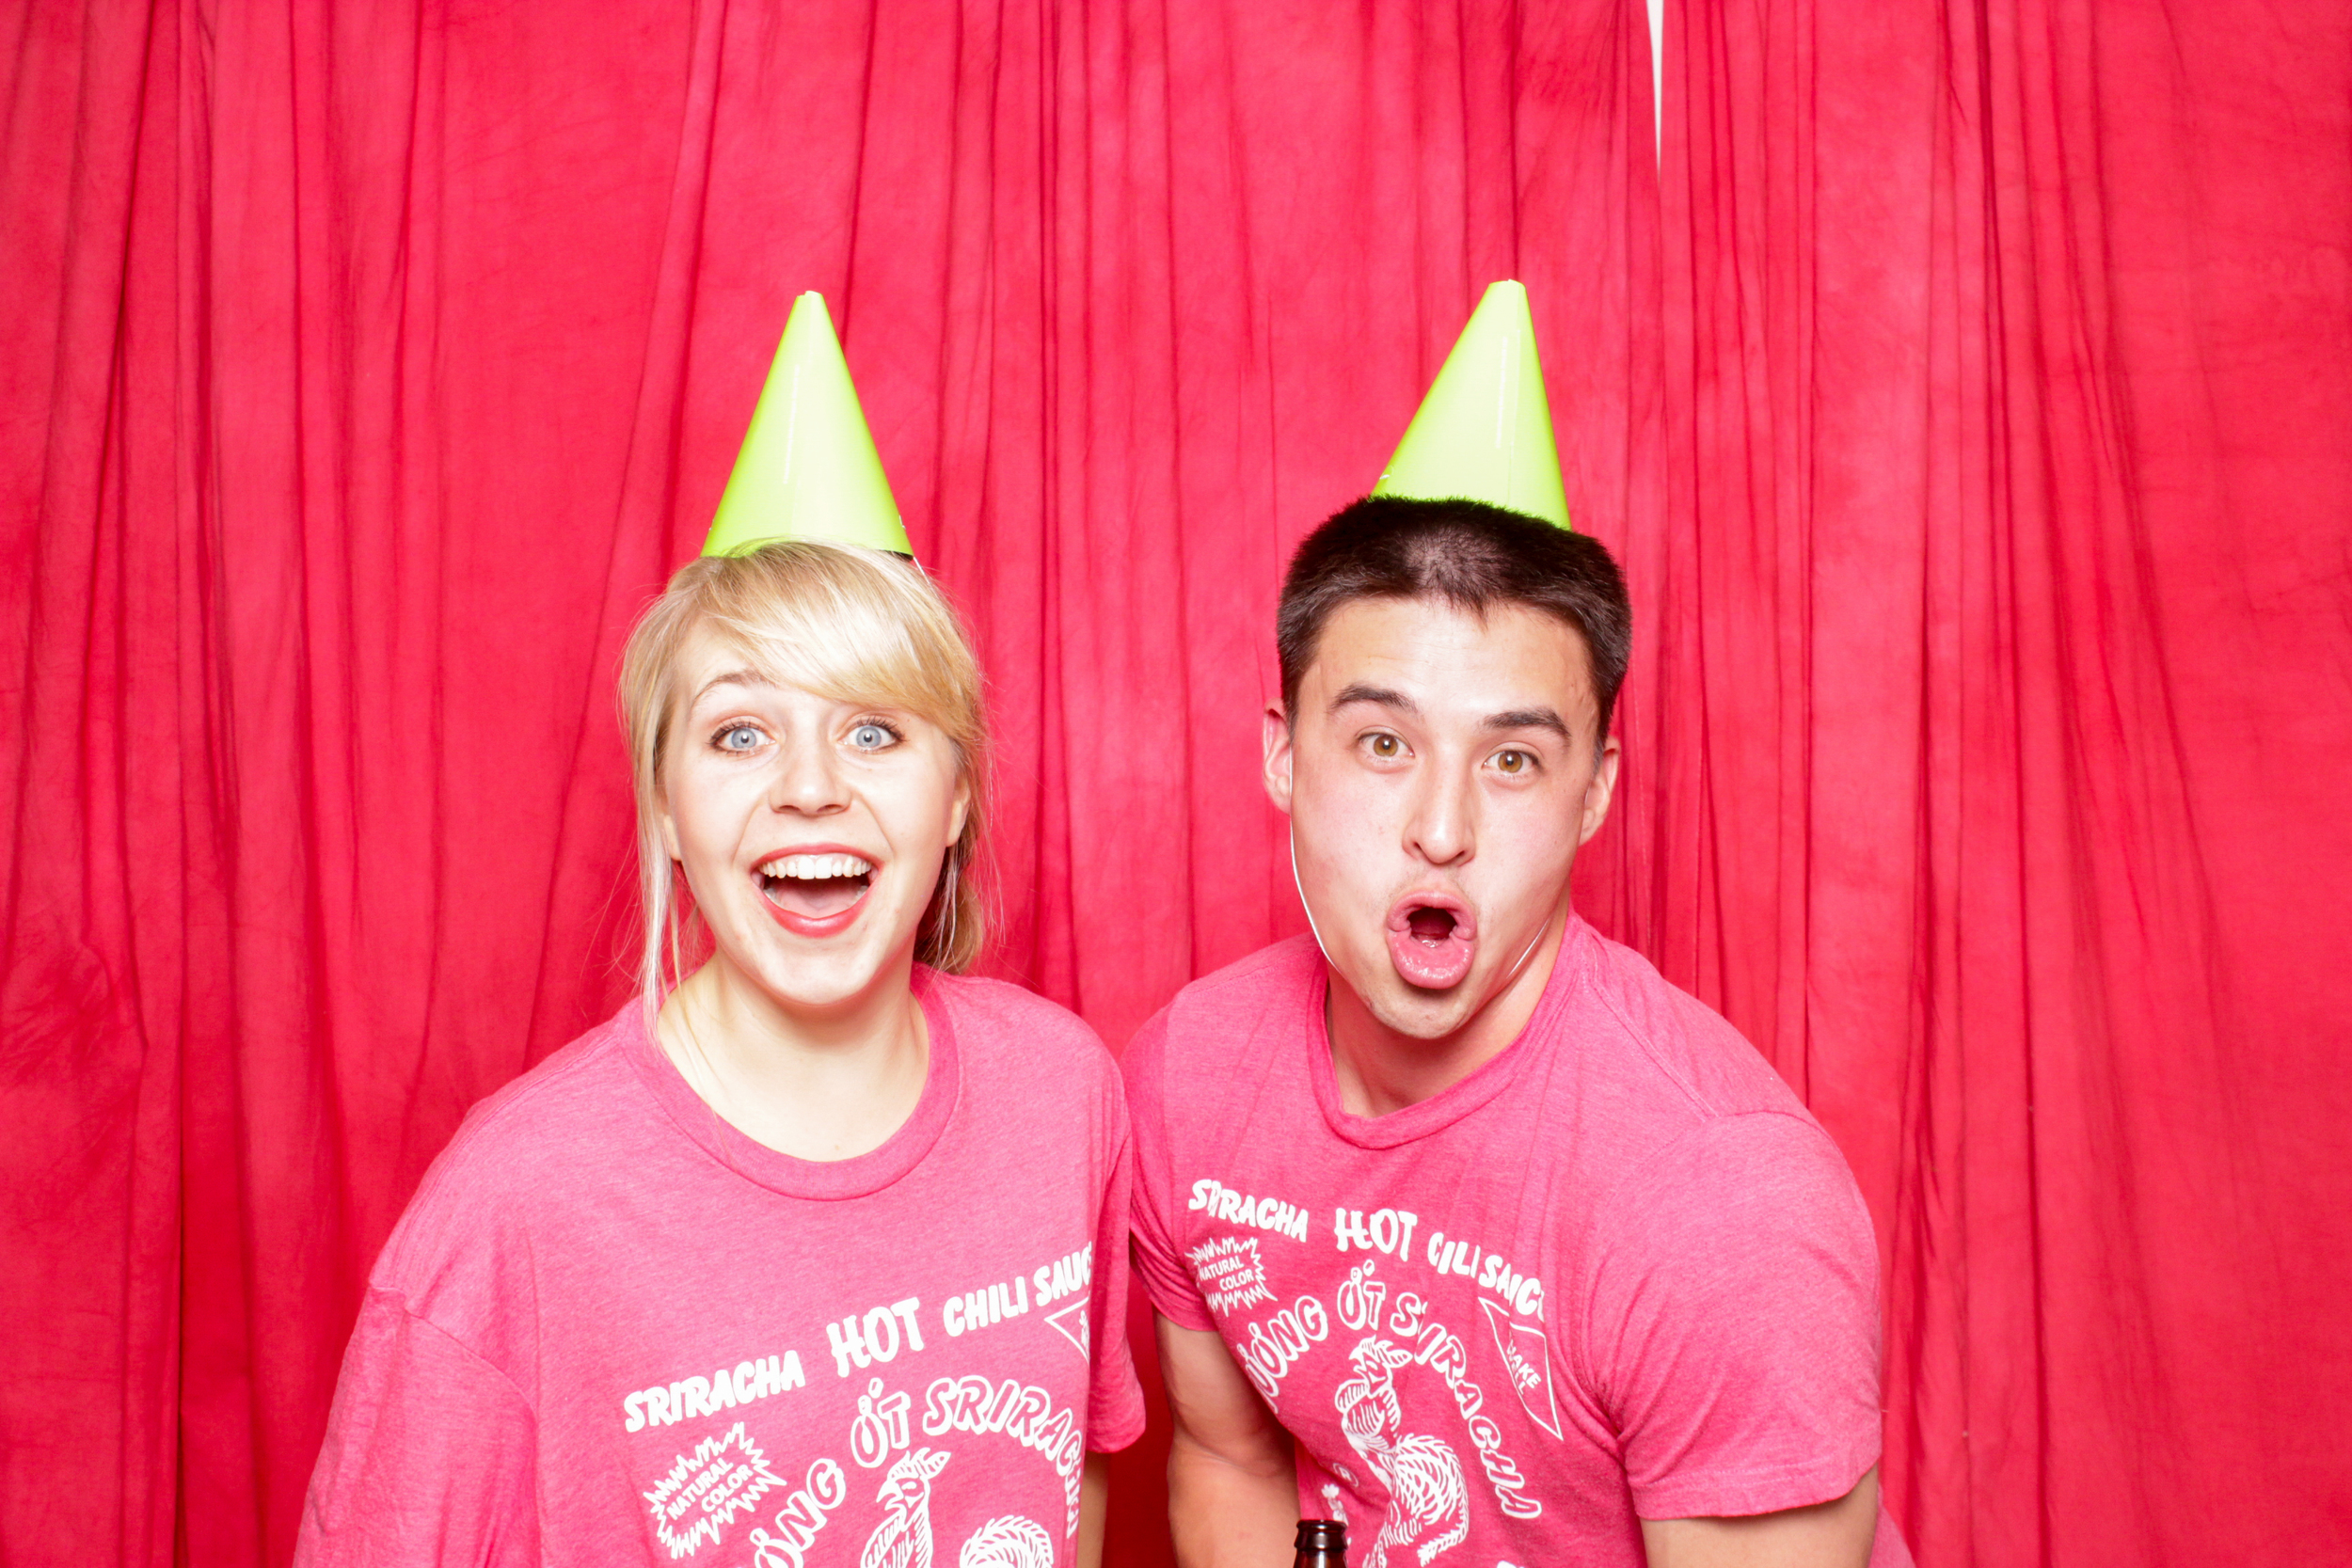 chico-photo-booth-rental-halloween-party-143.jpg